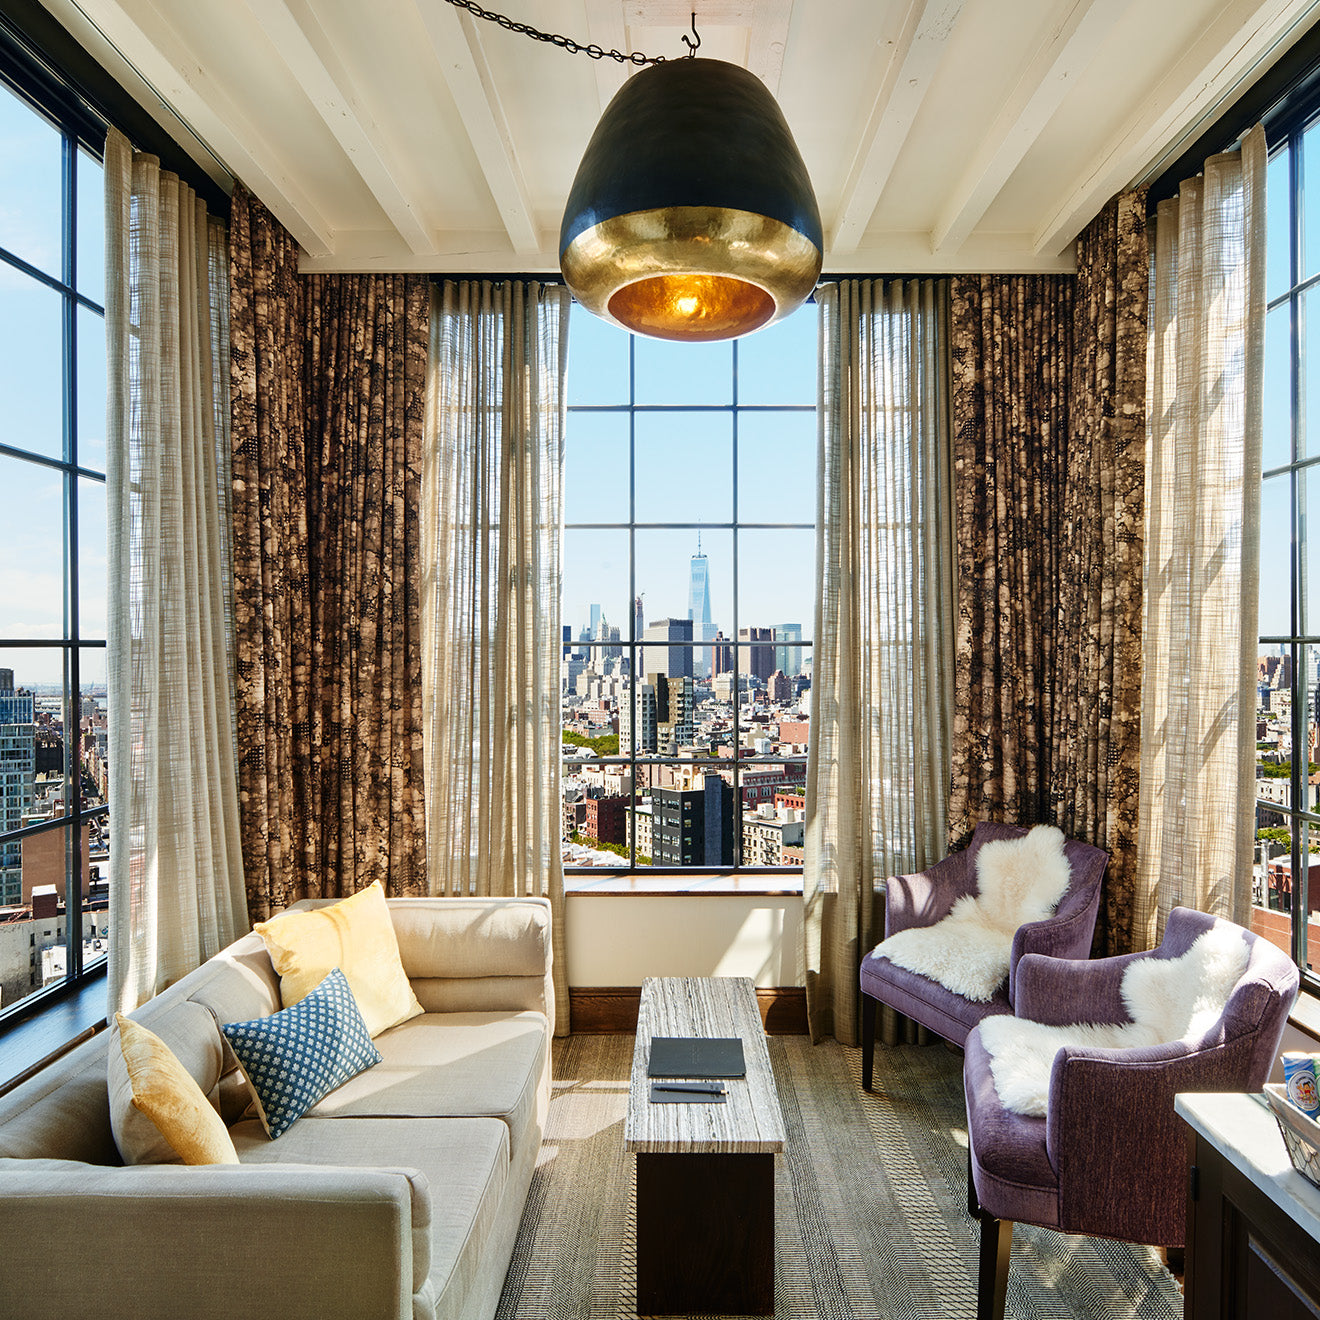 Sky Loft at the Ludlow Hotel in New York with 180 views across the city and Manhattan skyline